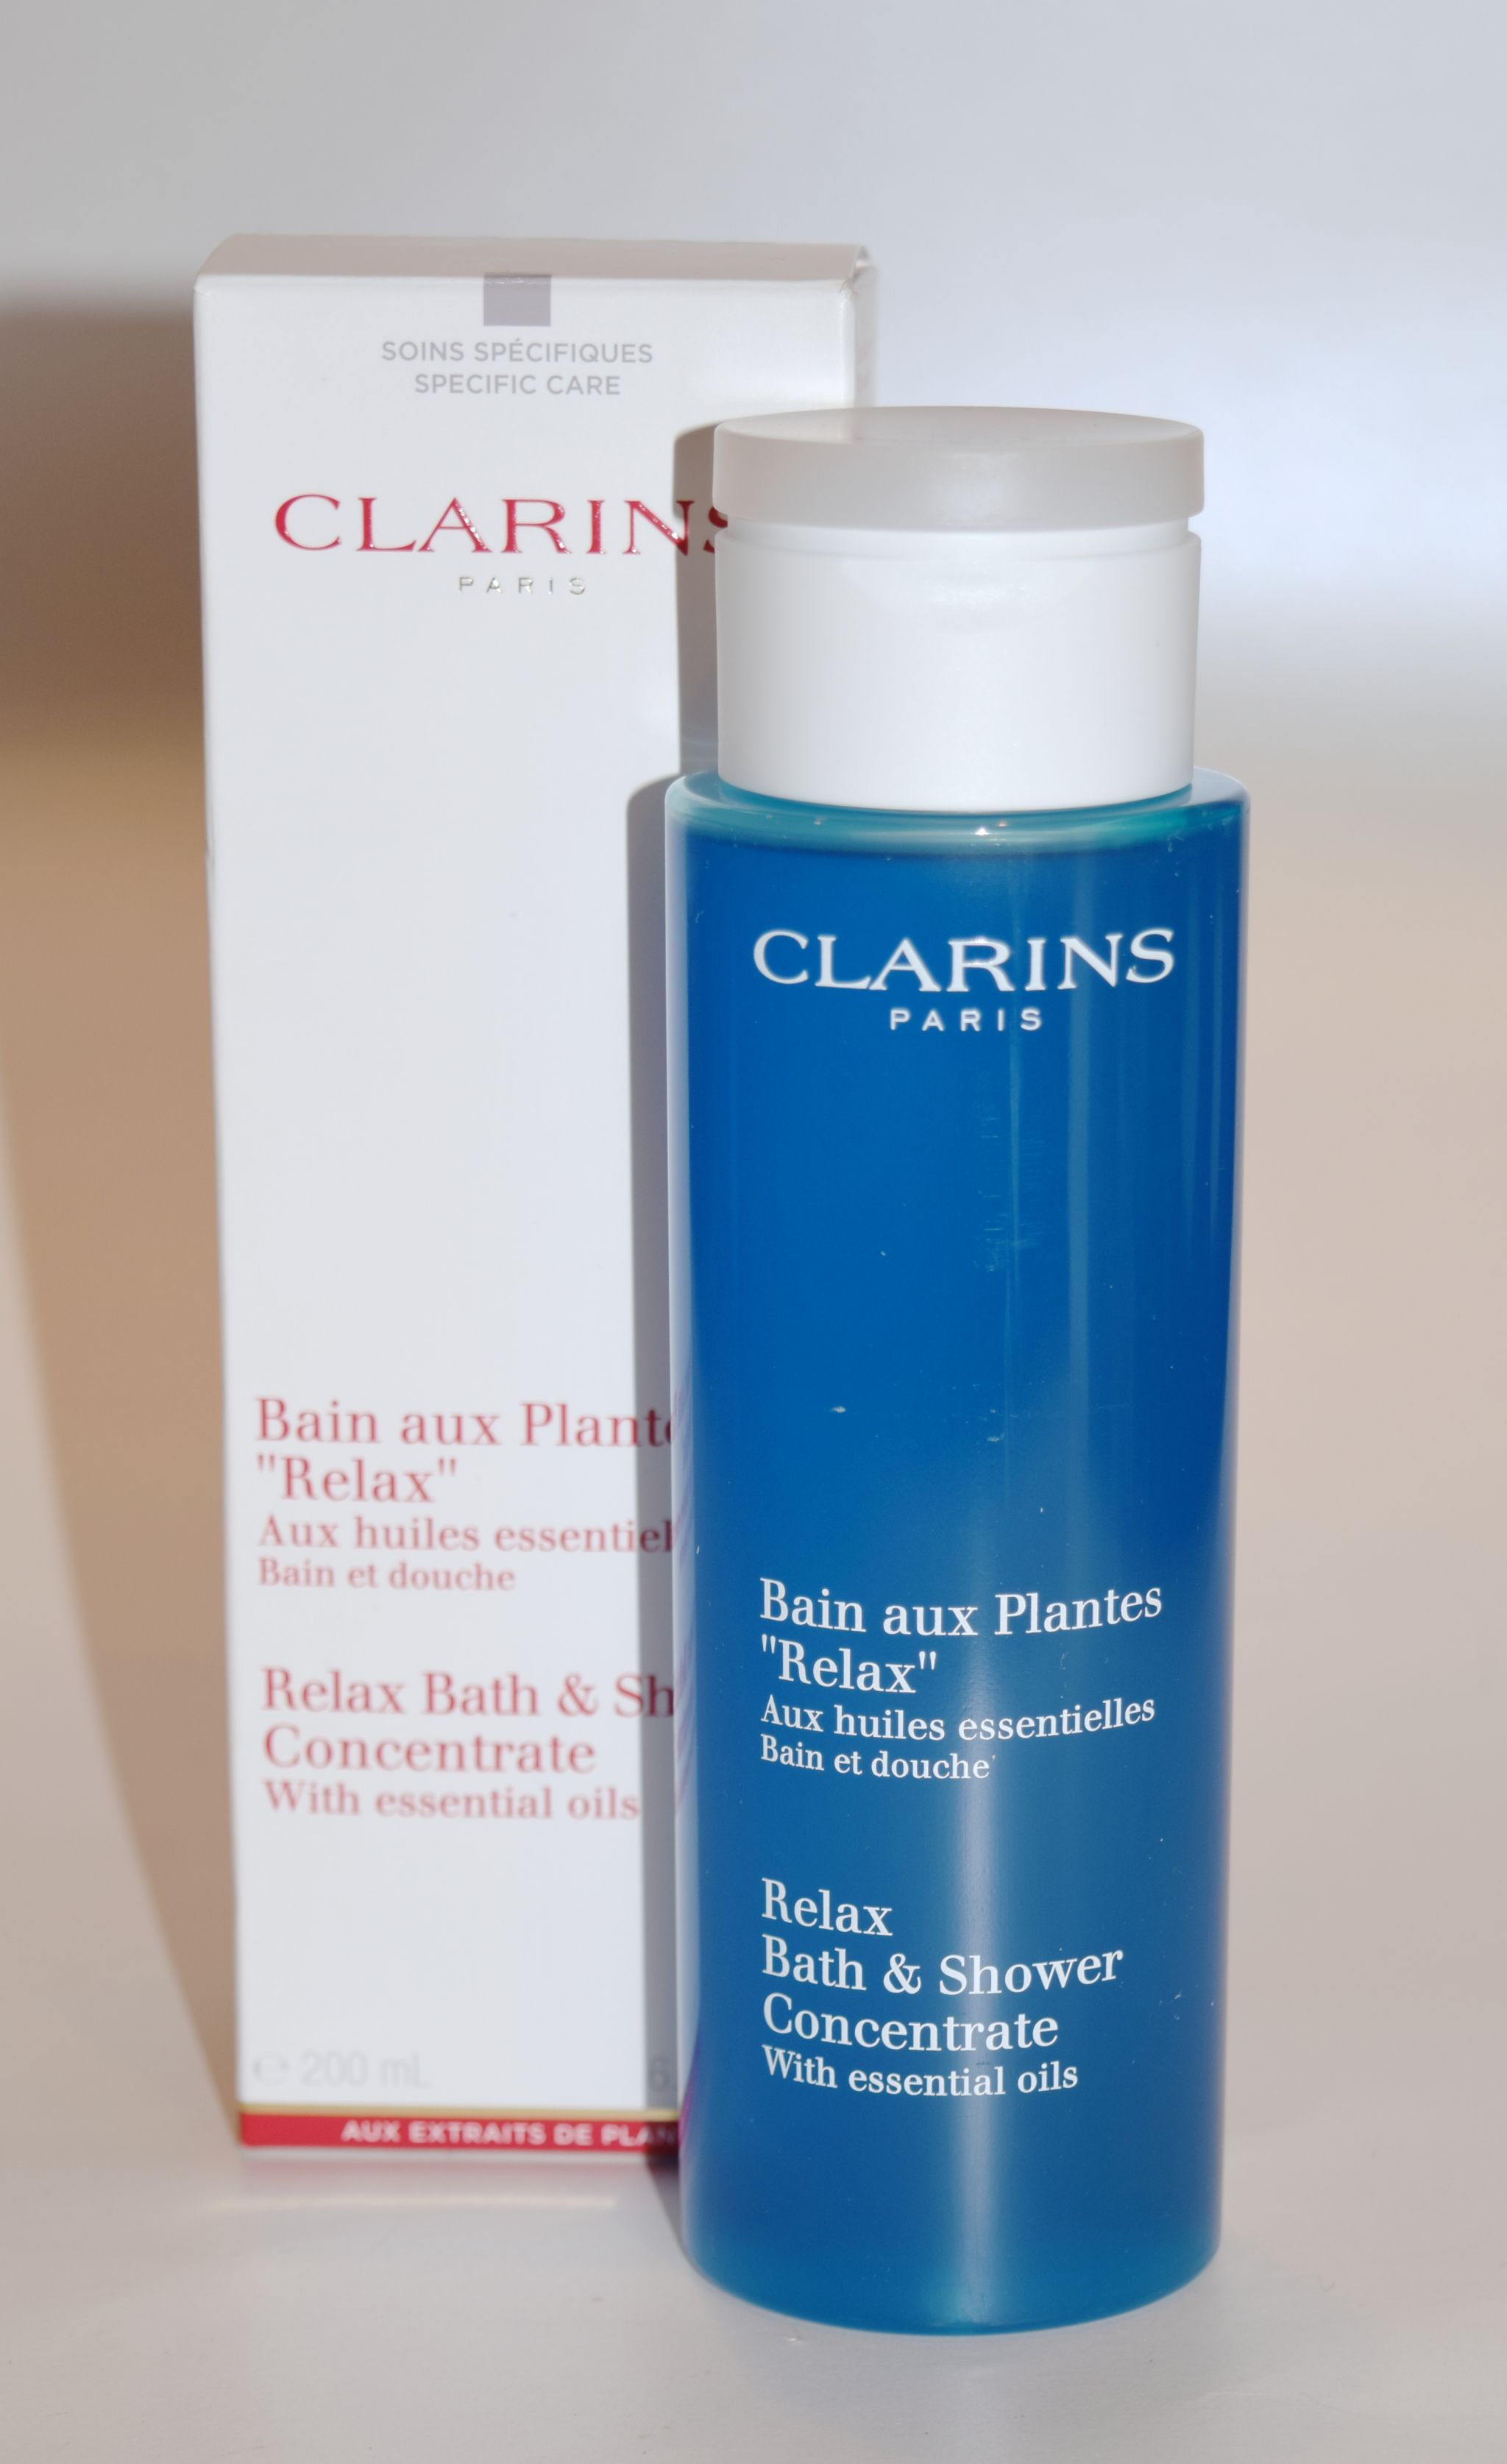 Clarins Relax Bath Amp Shower Concentrate The Luxe List